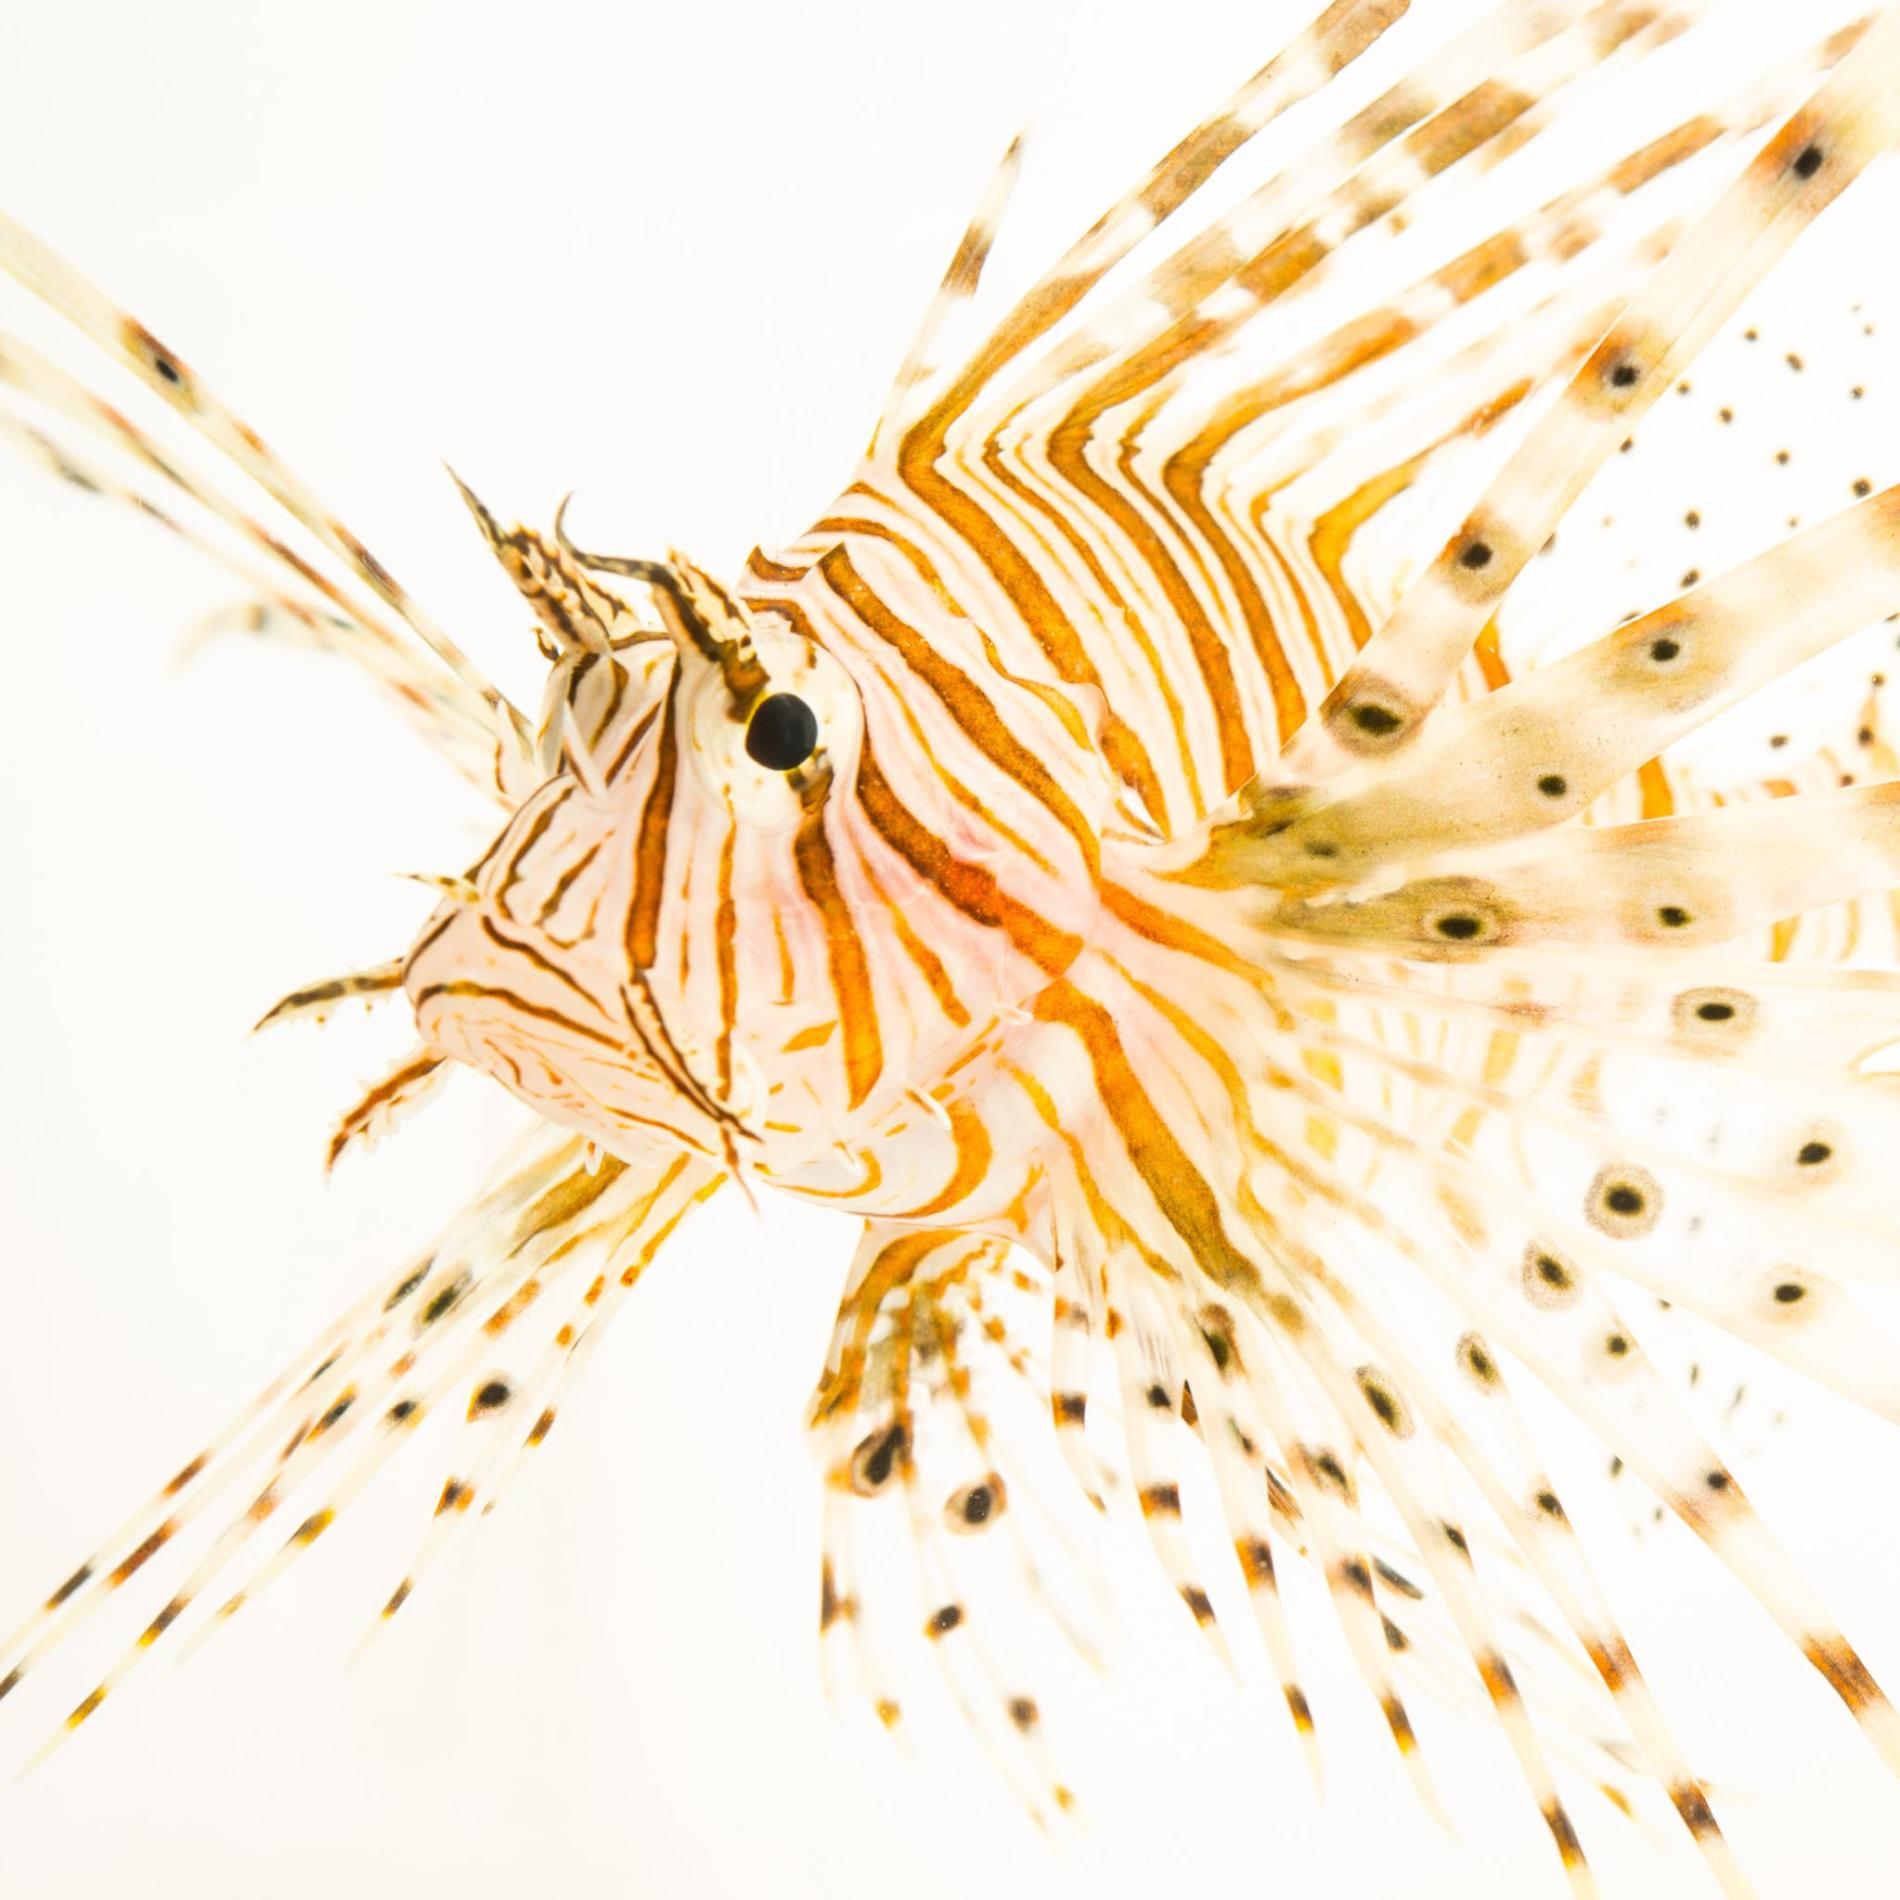 1900x1900 > Lionfish Wallpapers